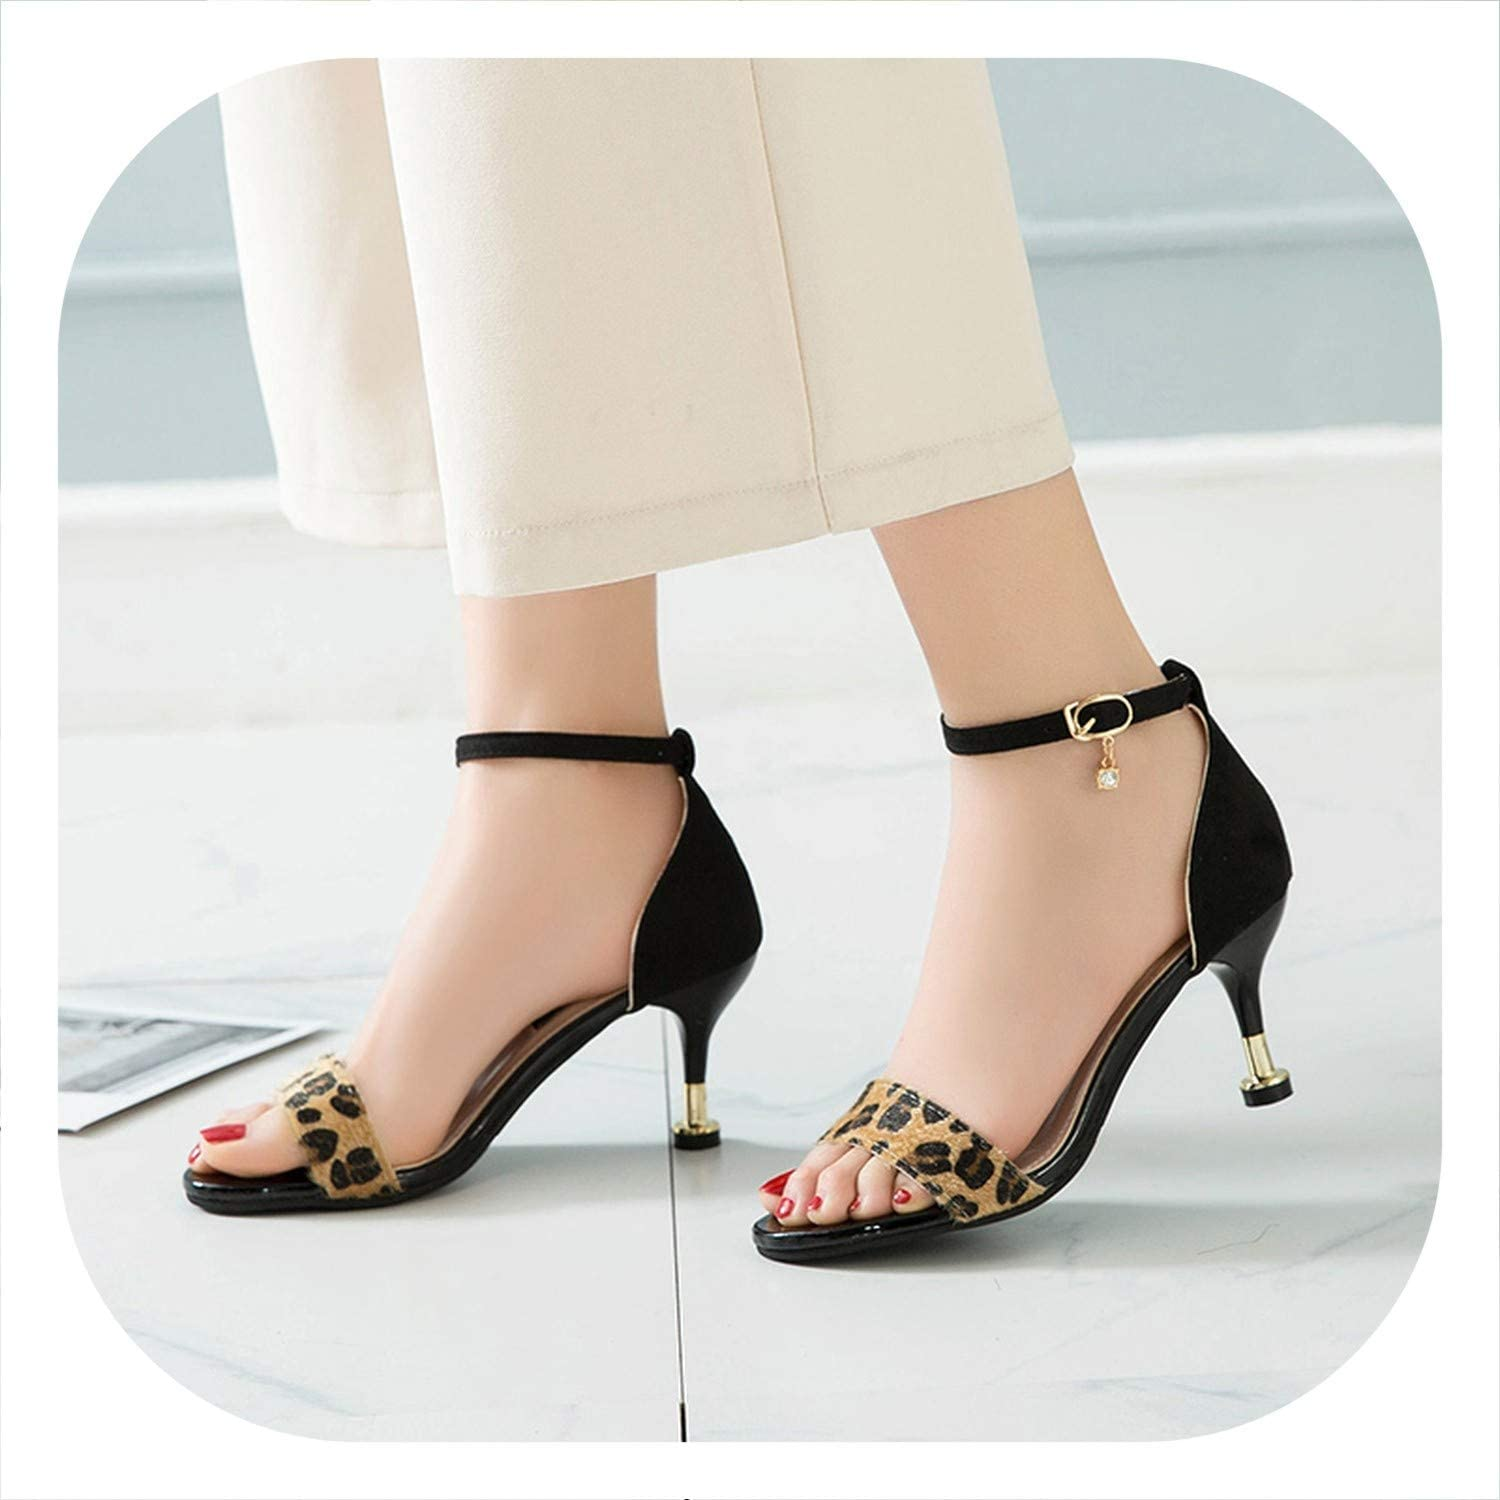 HANBINGPO Women Sandals Open Toe Summer shoes with 7CM High Heels Sandals Female Thin Heel shoes